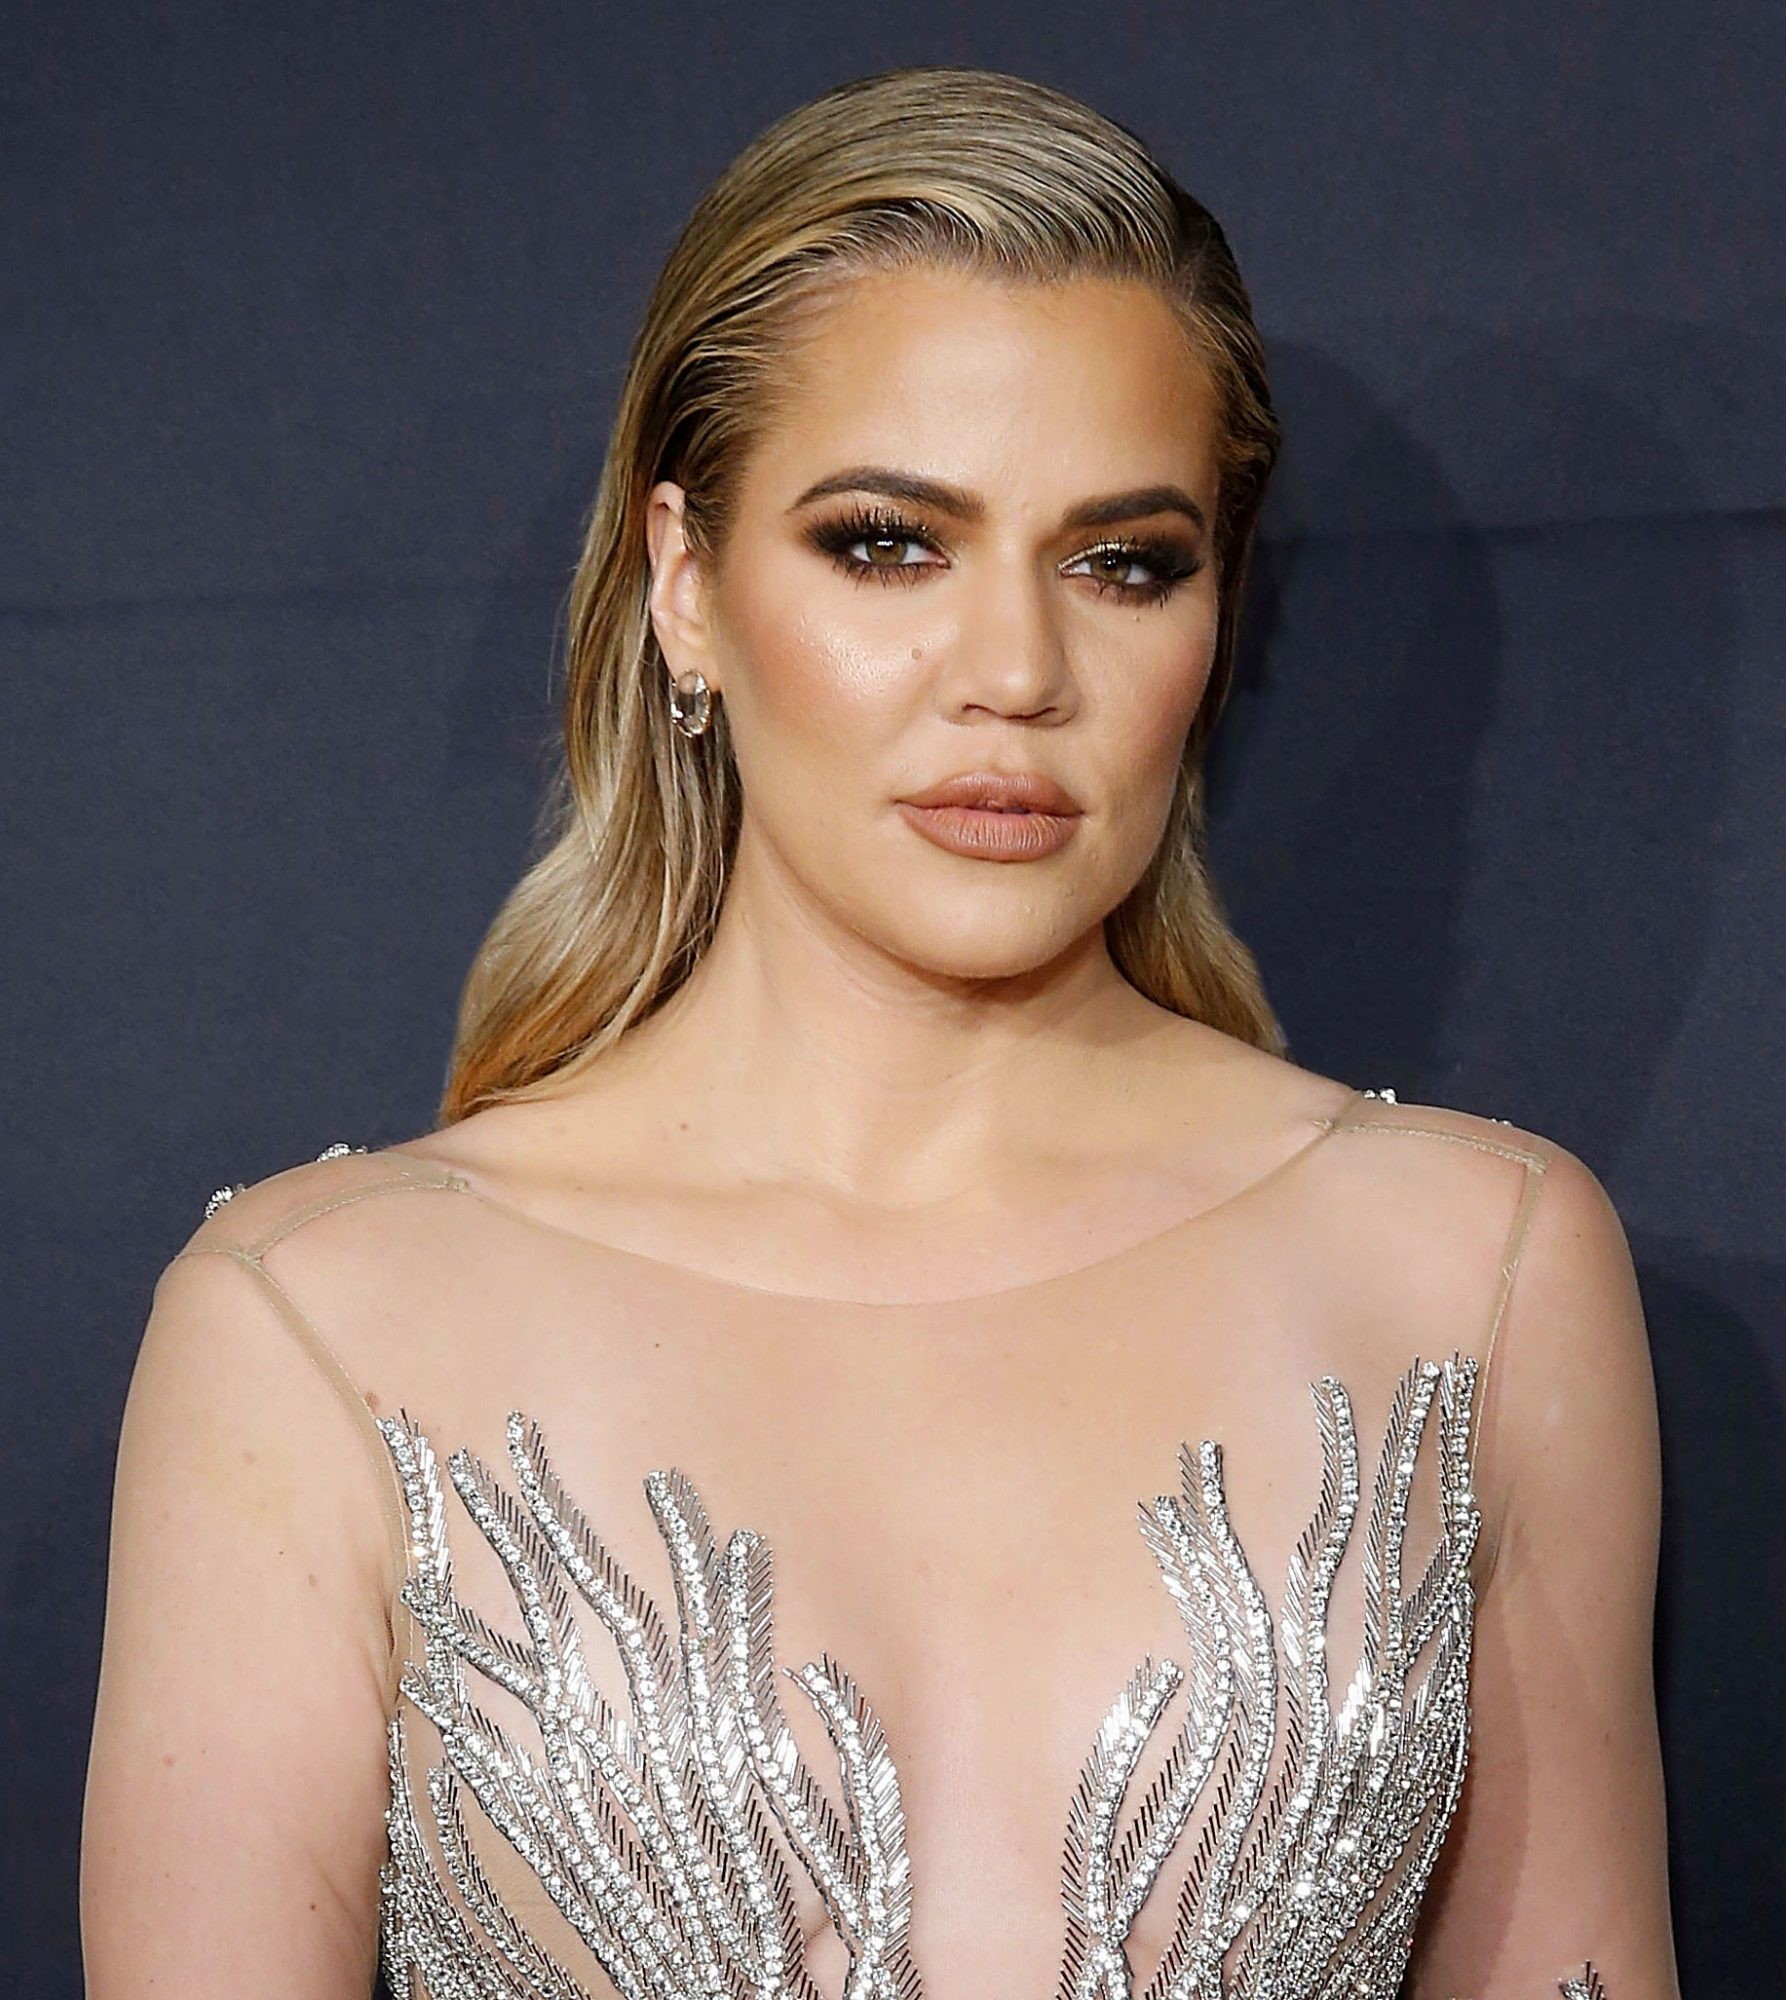 Don't You Just Love Khloe Kardashian With Short Hair?